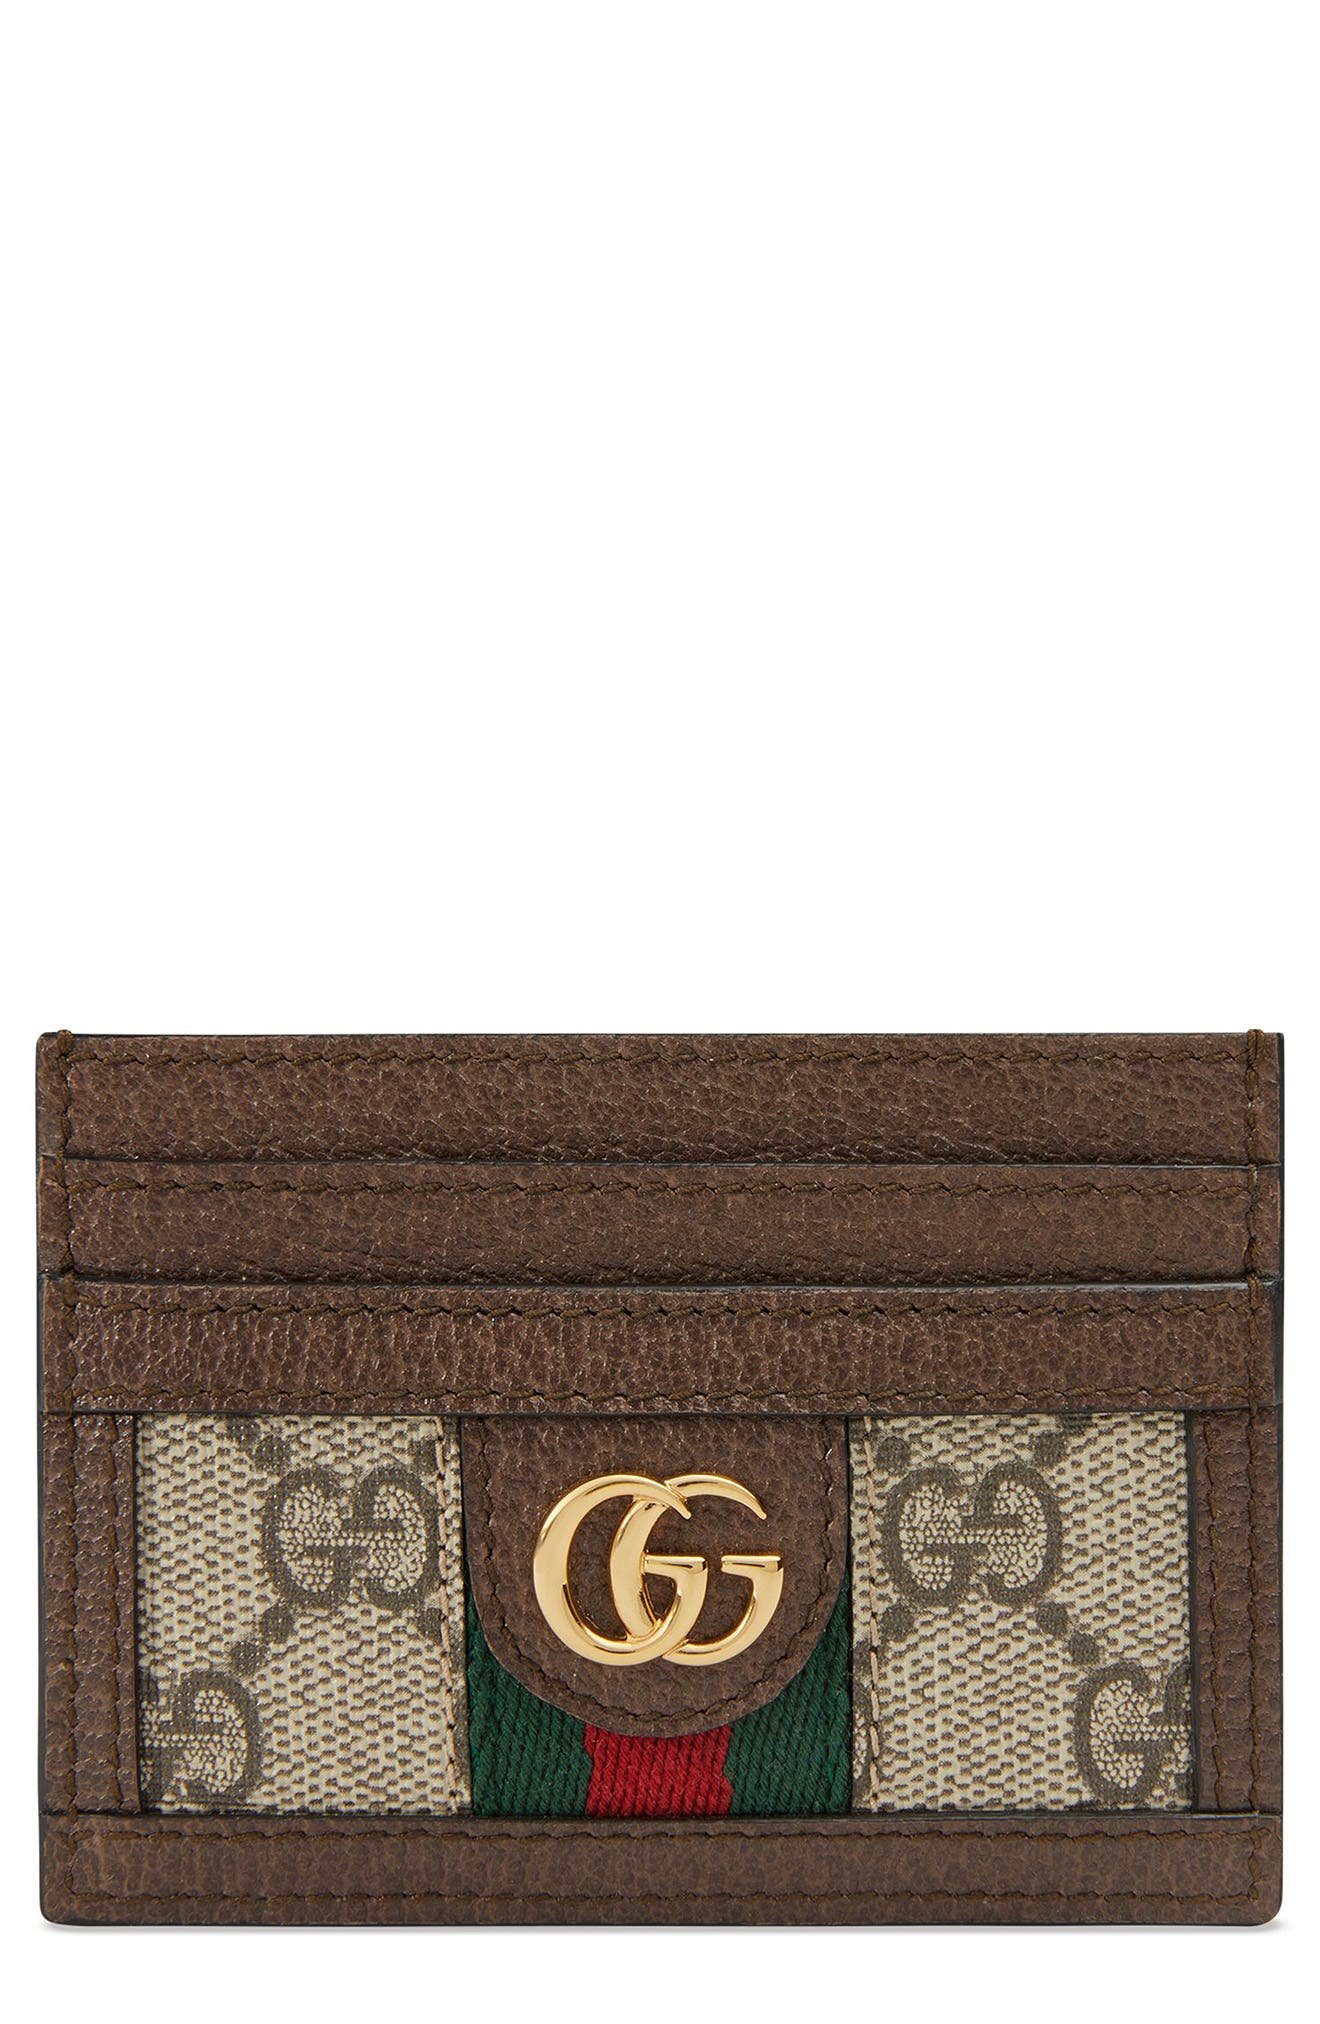 Ophidia GG Supreme Card Case,                         Main,                         color, BEIGE EBONY/ ACERO/ VERT RED